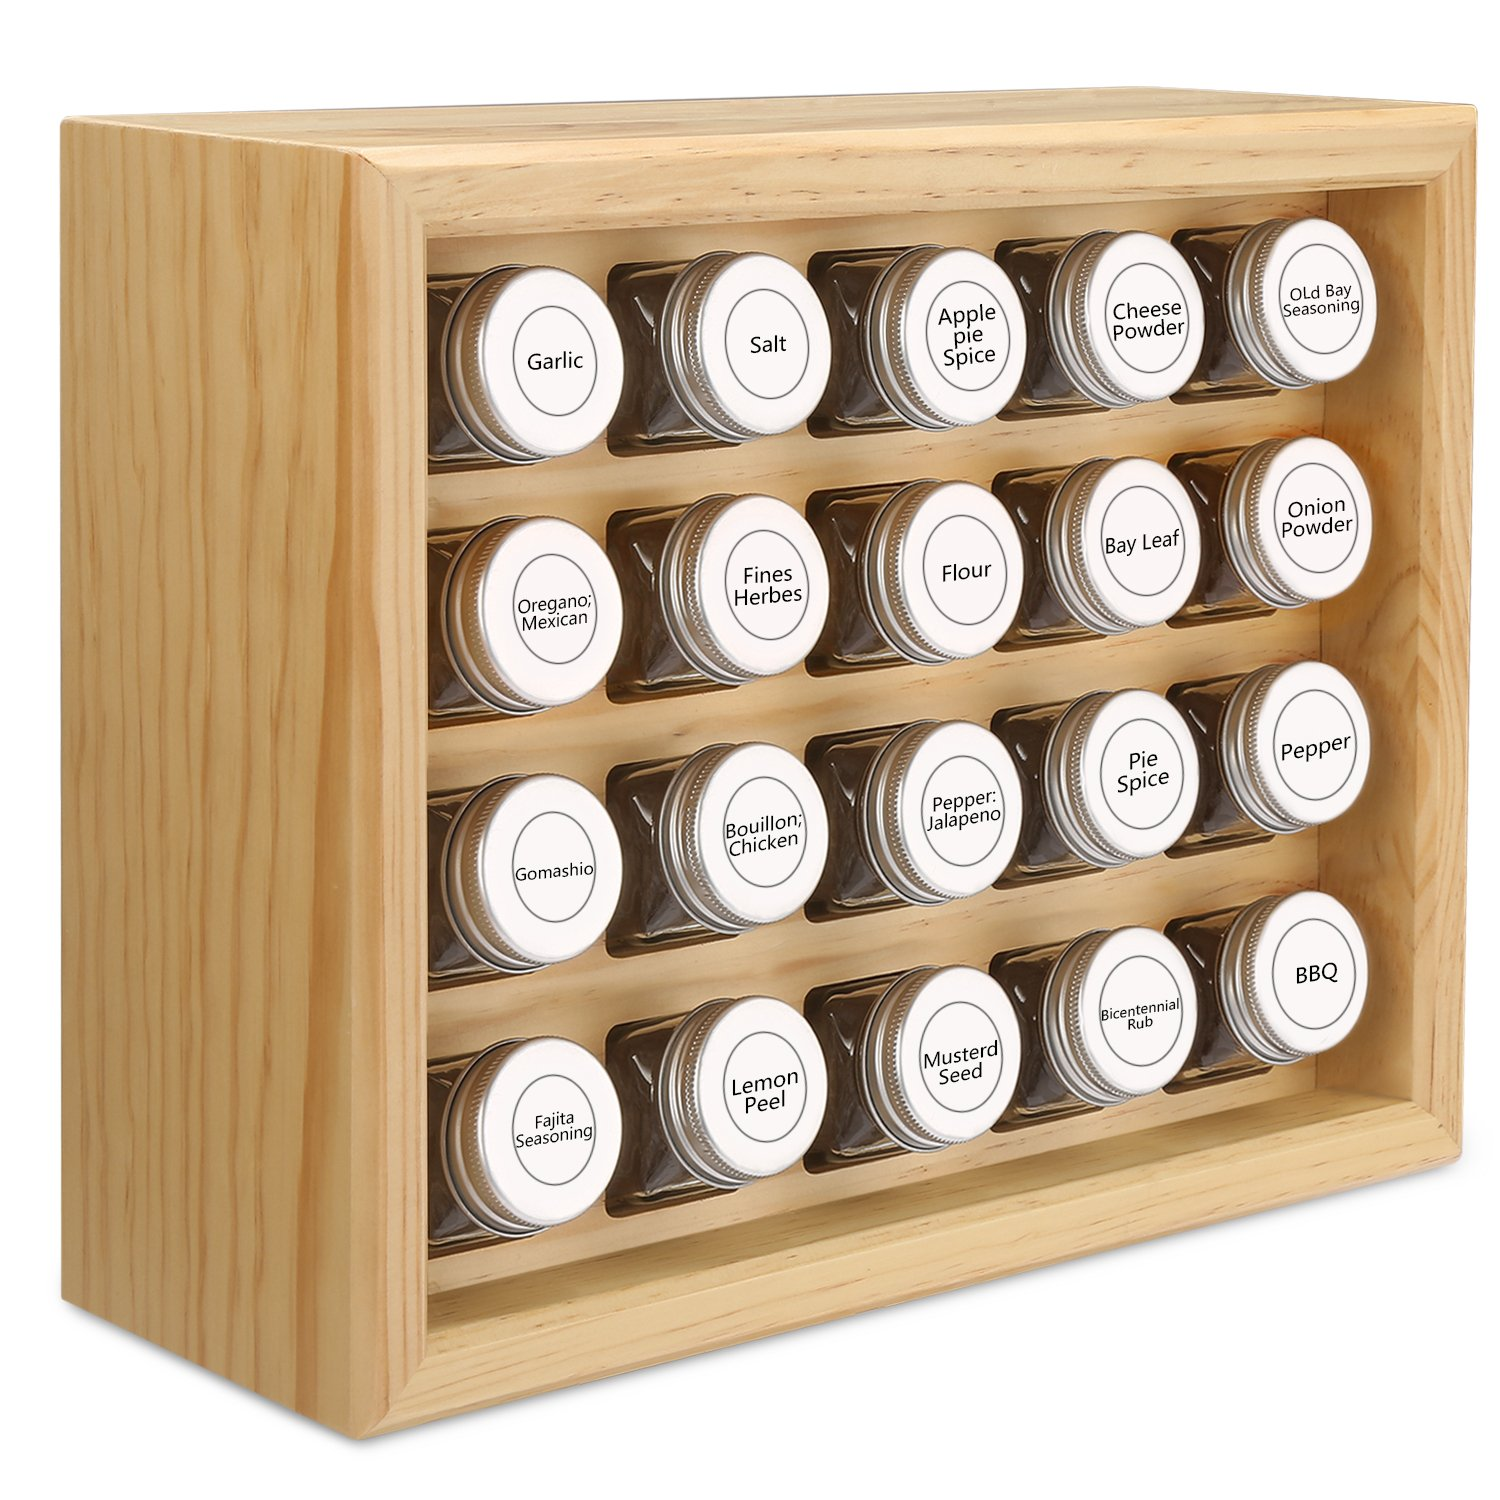 100% Solid Wood Spice Rack, Includes 20 4oz Clear Glass Jars,315 Pre-Printed Labels.Fully Assembled.